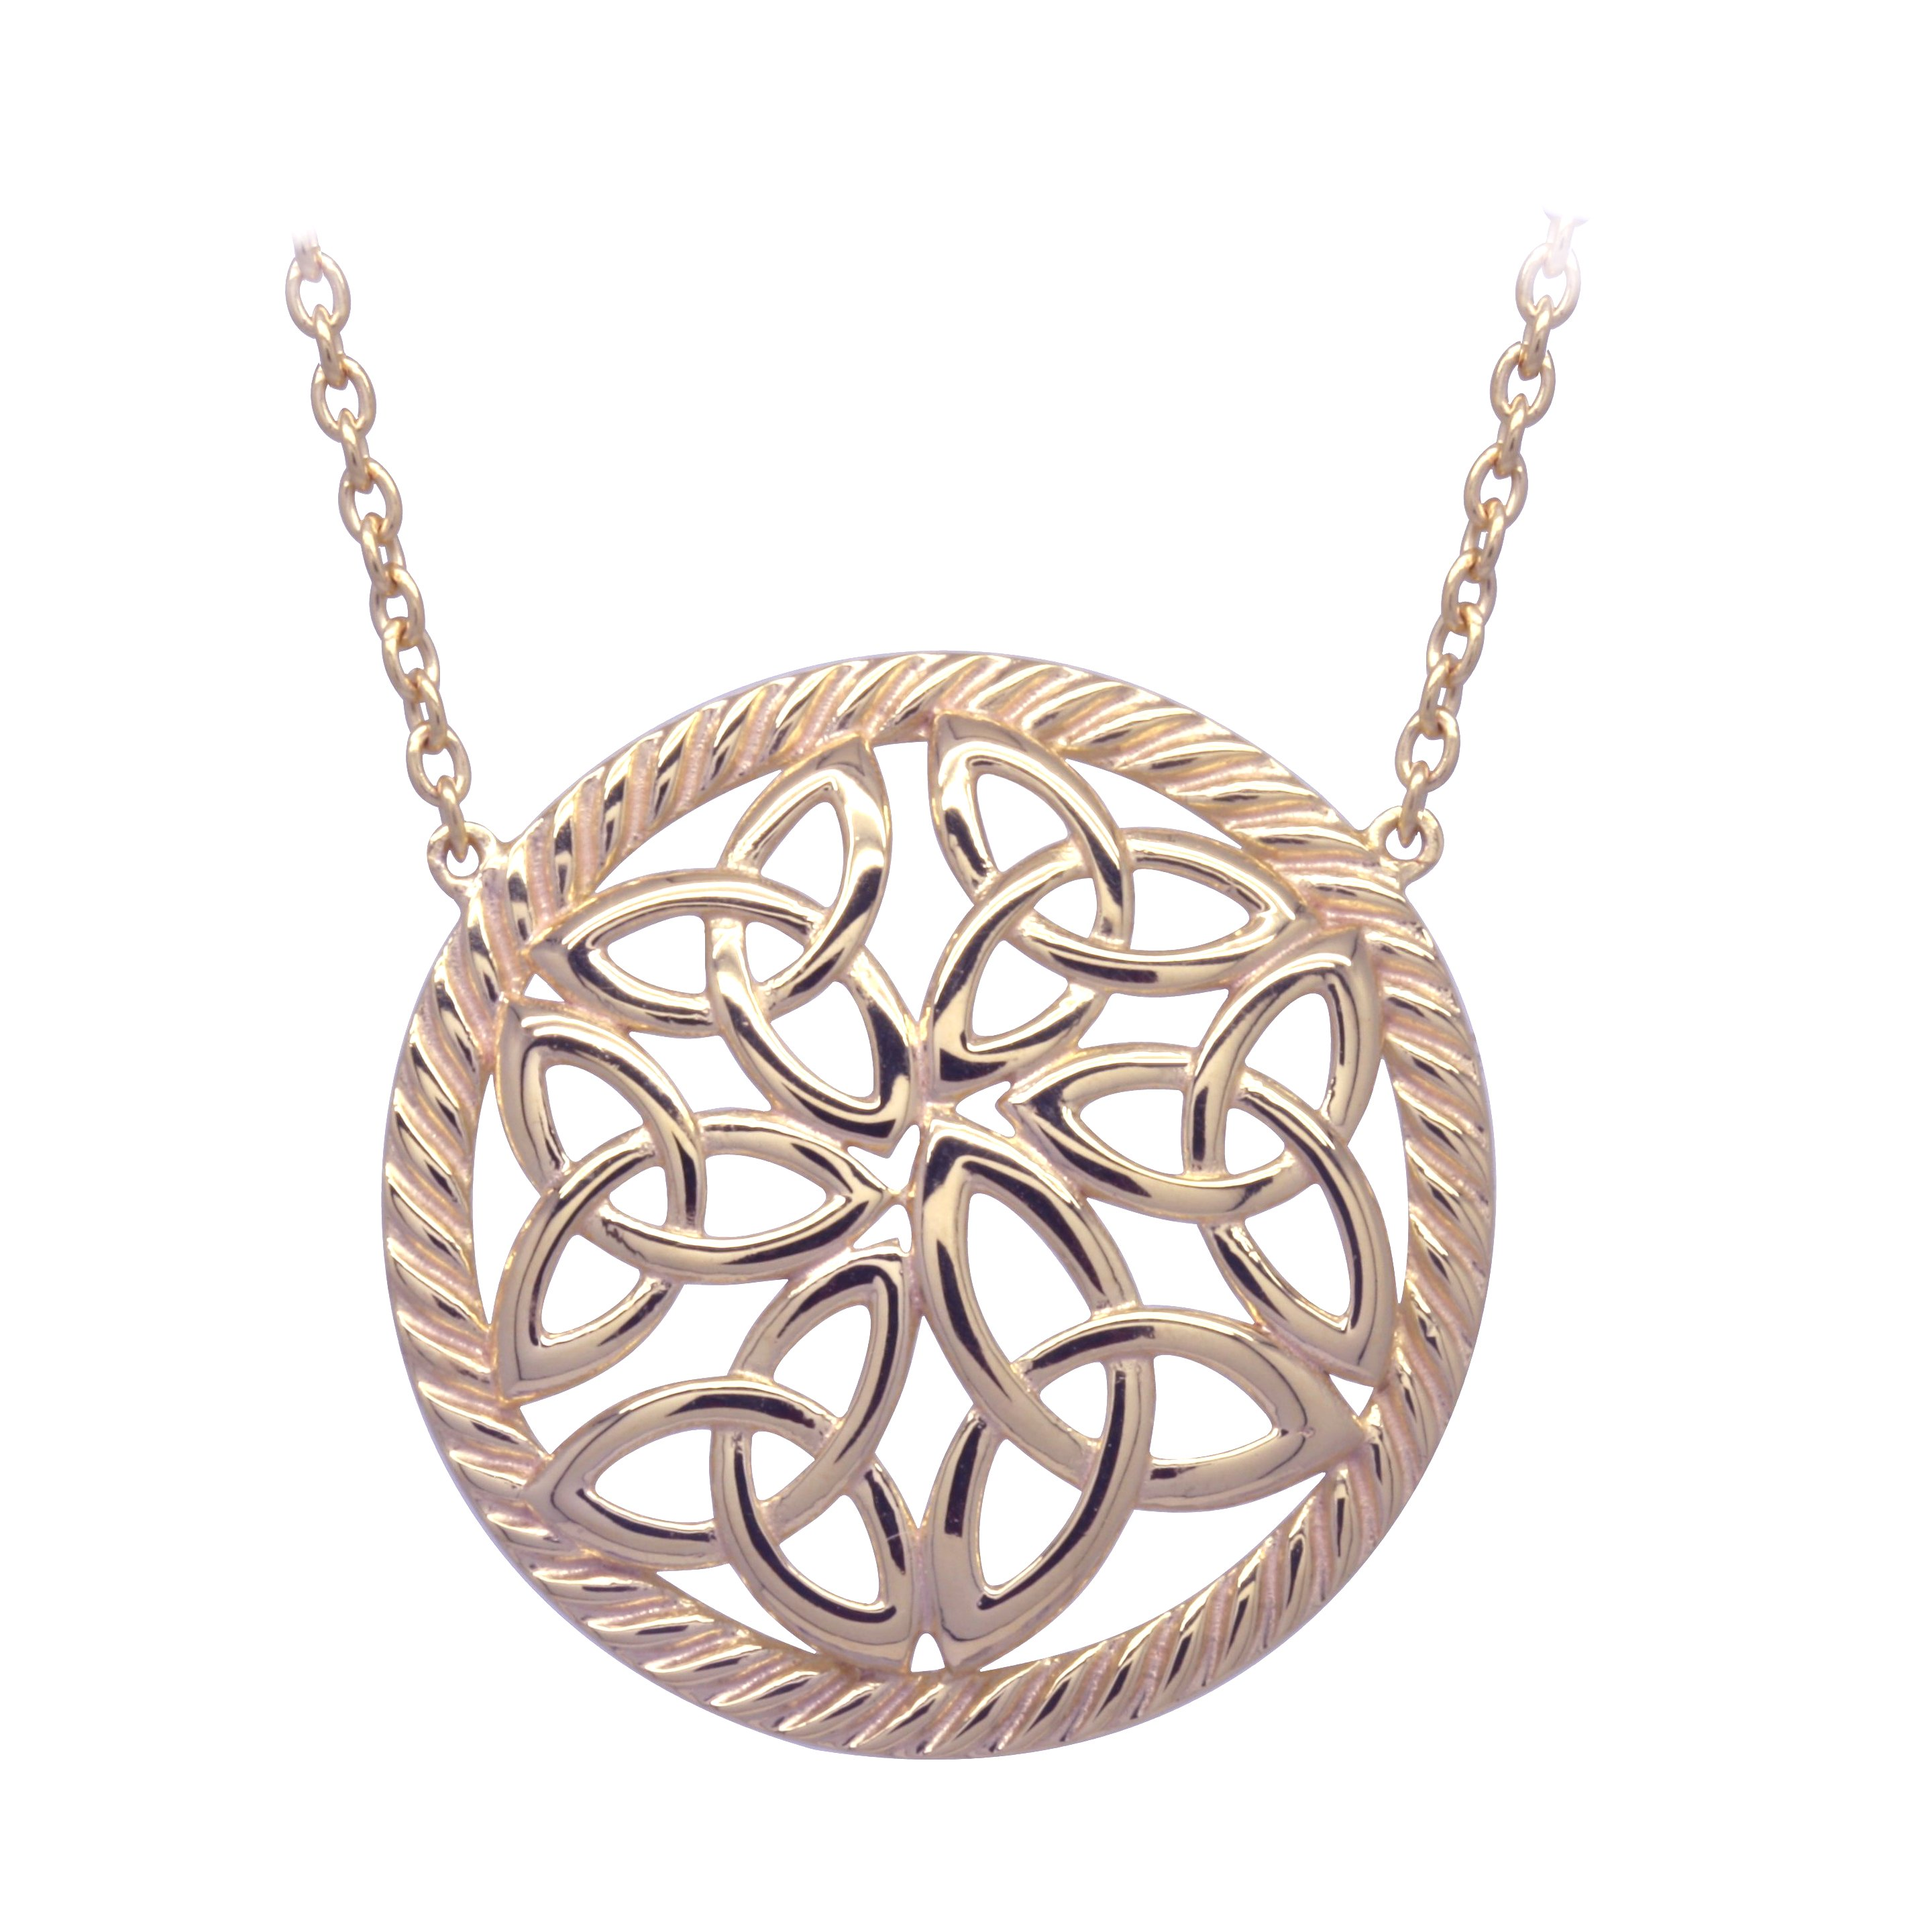 Irish Necklace | Rose Gold Plated Sterling Silver Trinity Knot Round Pendant